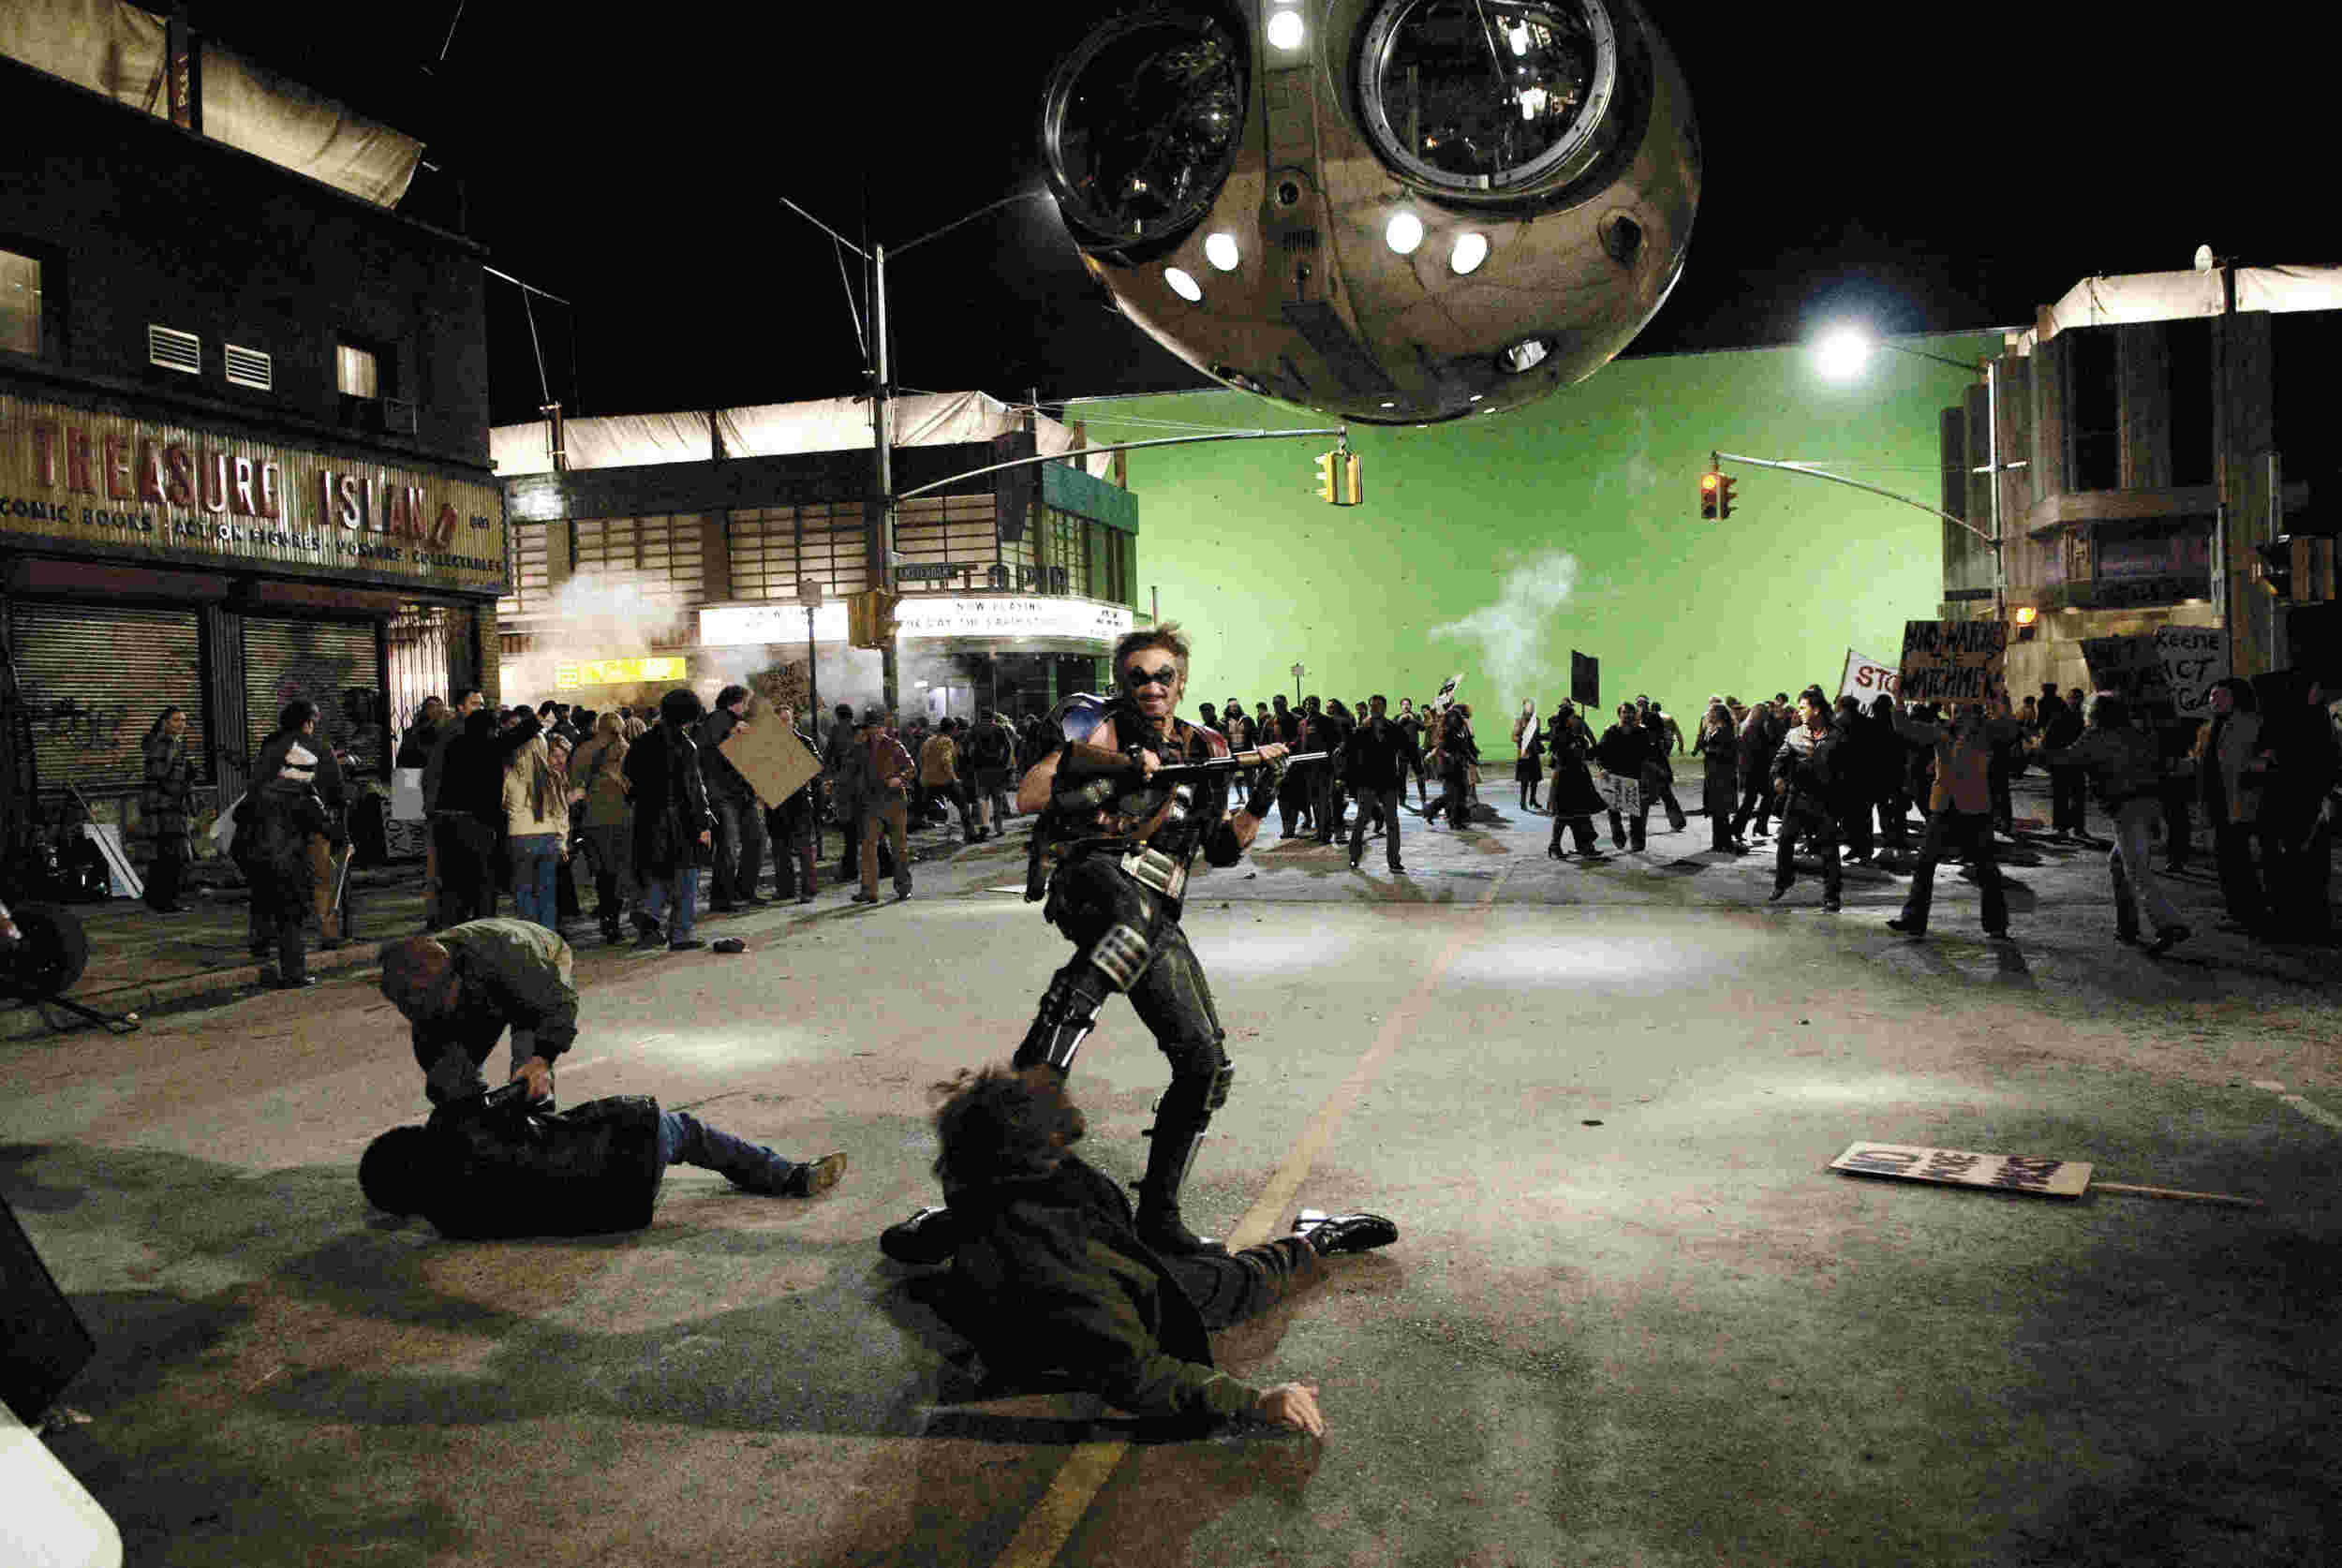 On set for The Watchmen.